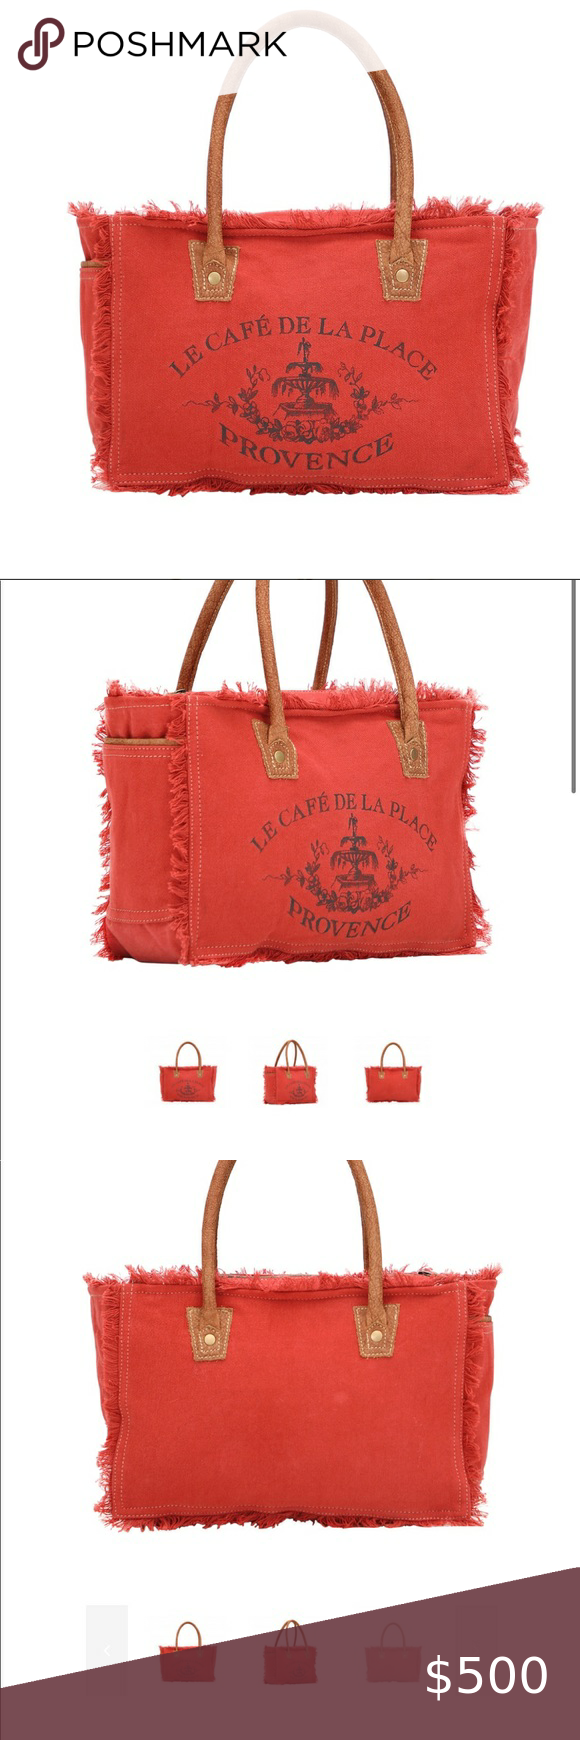 Coming Soon Provence France Canvas Tote Bag Nwt In 2020 Canvas Tote Bags Womens Tote Bags Canvas Tote Information about the walmart policies for returns, refunds and exchanges. pinterest